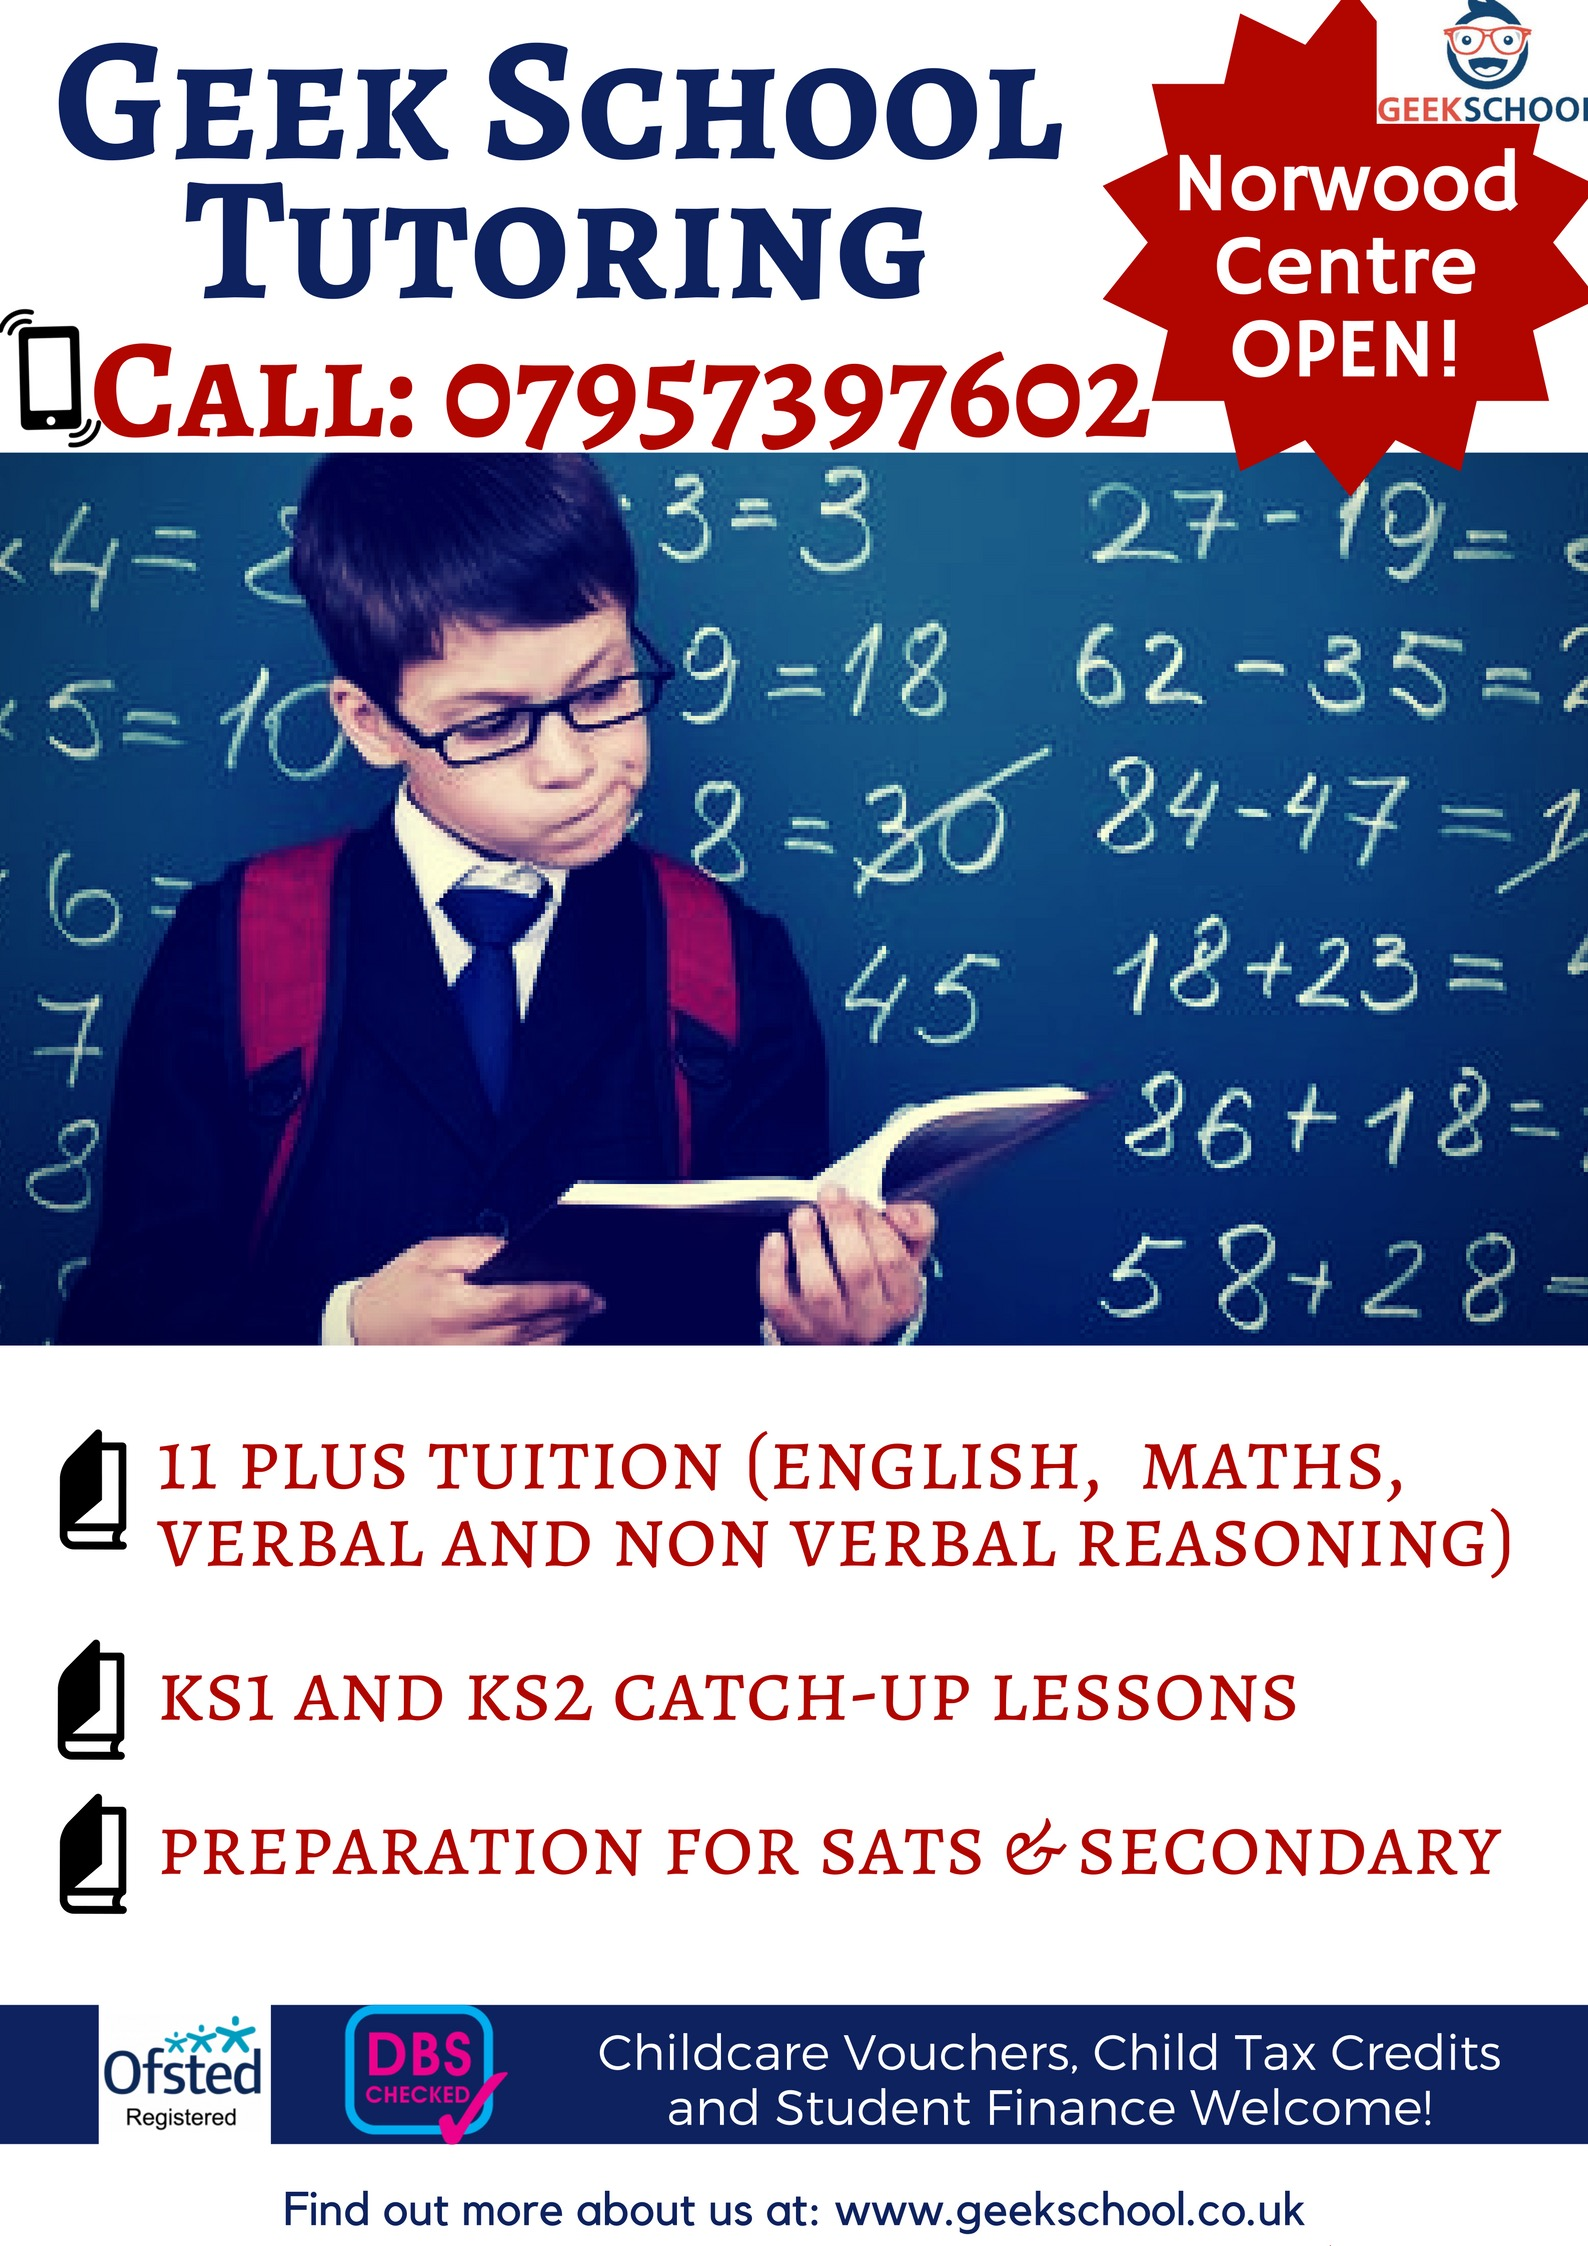 Are You Looking For 11 Plus Tuition Near Norwood